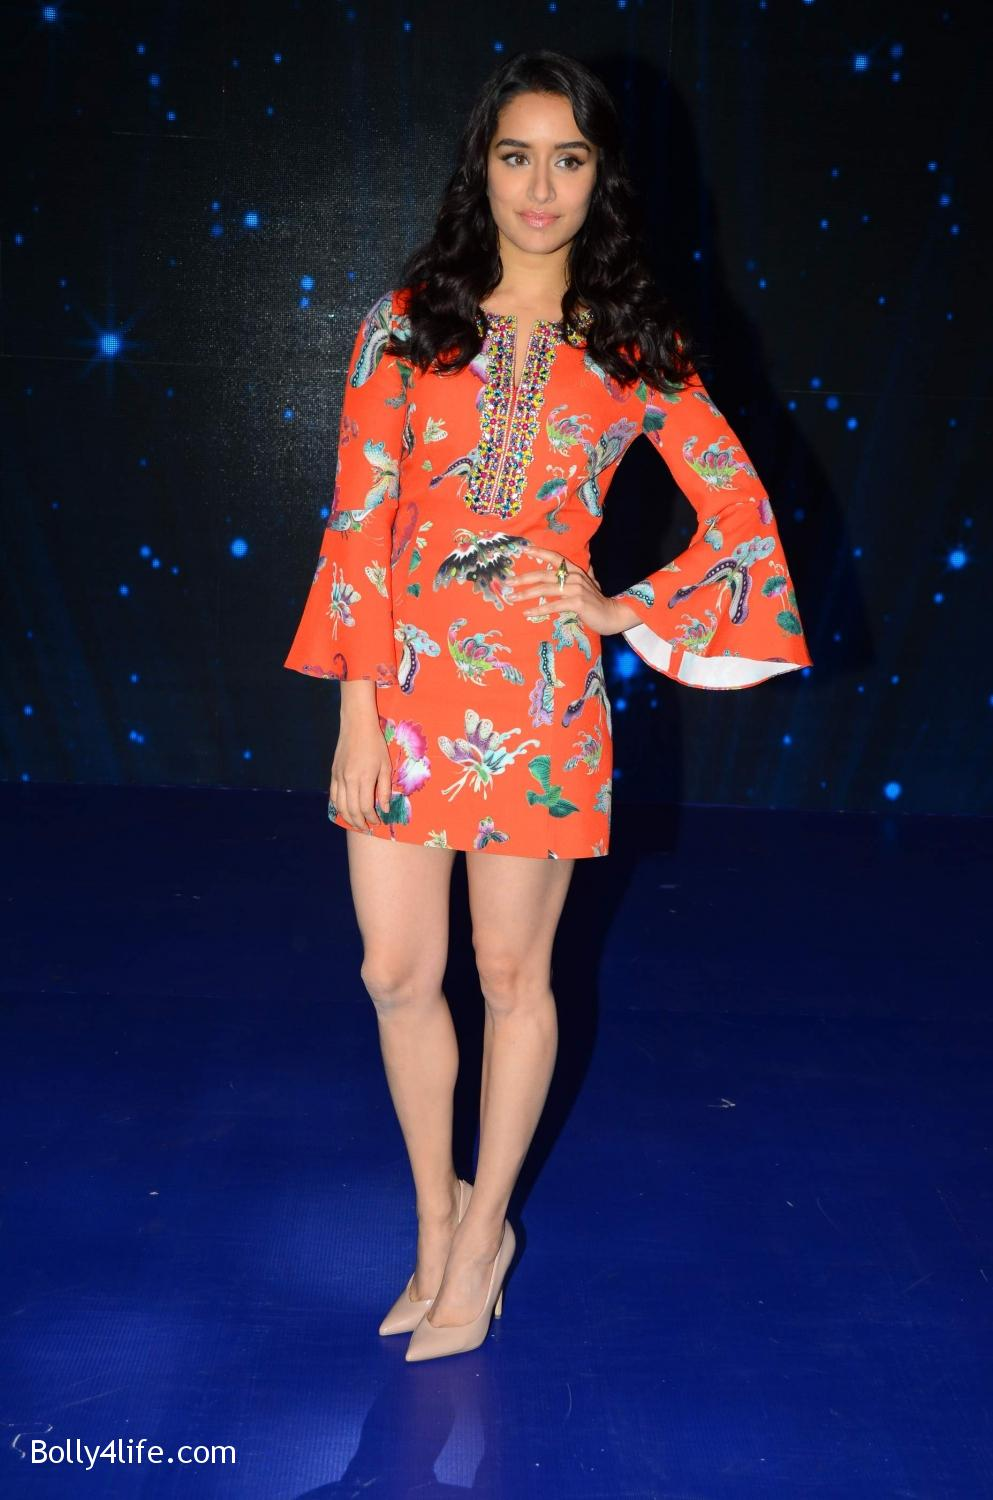 Shraddha-Kapoor-and-Aditya-Roy-Kapur-visit-on-the-set-of-Indian-Idol-Season-9-2.jpg